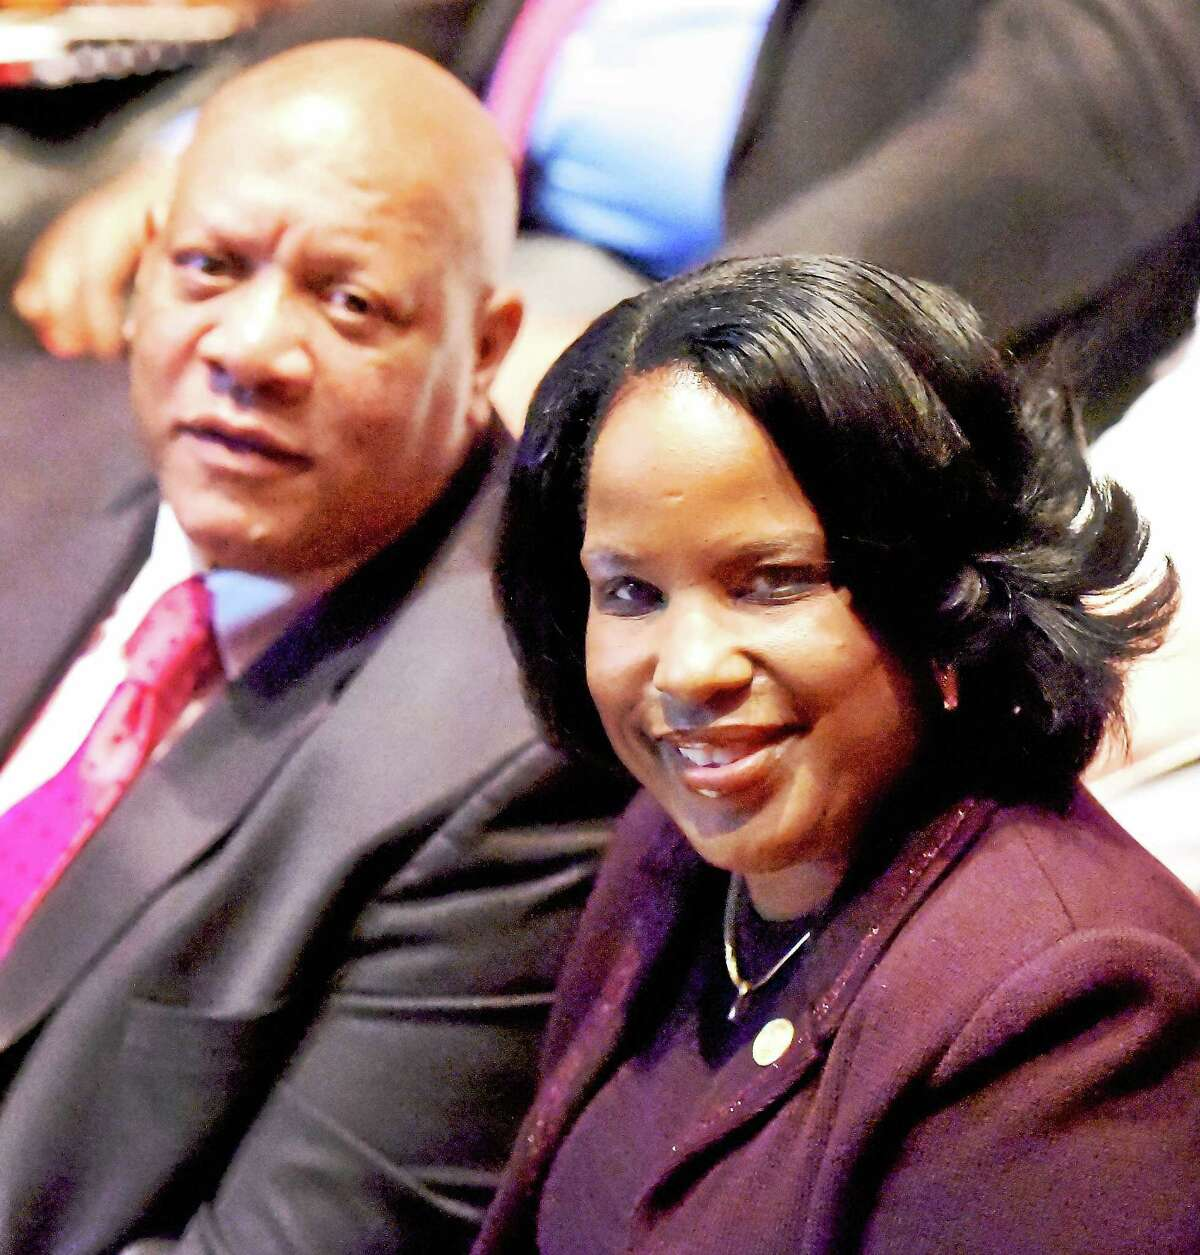 Scot X. Esdaile, president of the Connecticut State Conference of NAACP Branches and a National NAACP board member, left, with NAACP Chairwoman Roslyn Brock during Monday's conference.